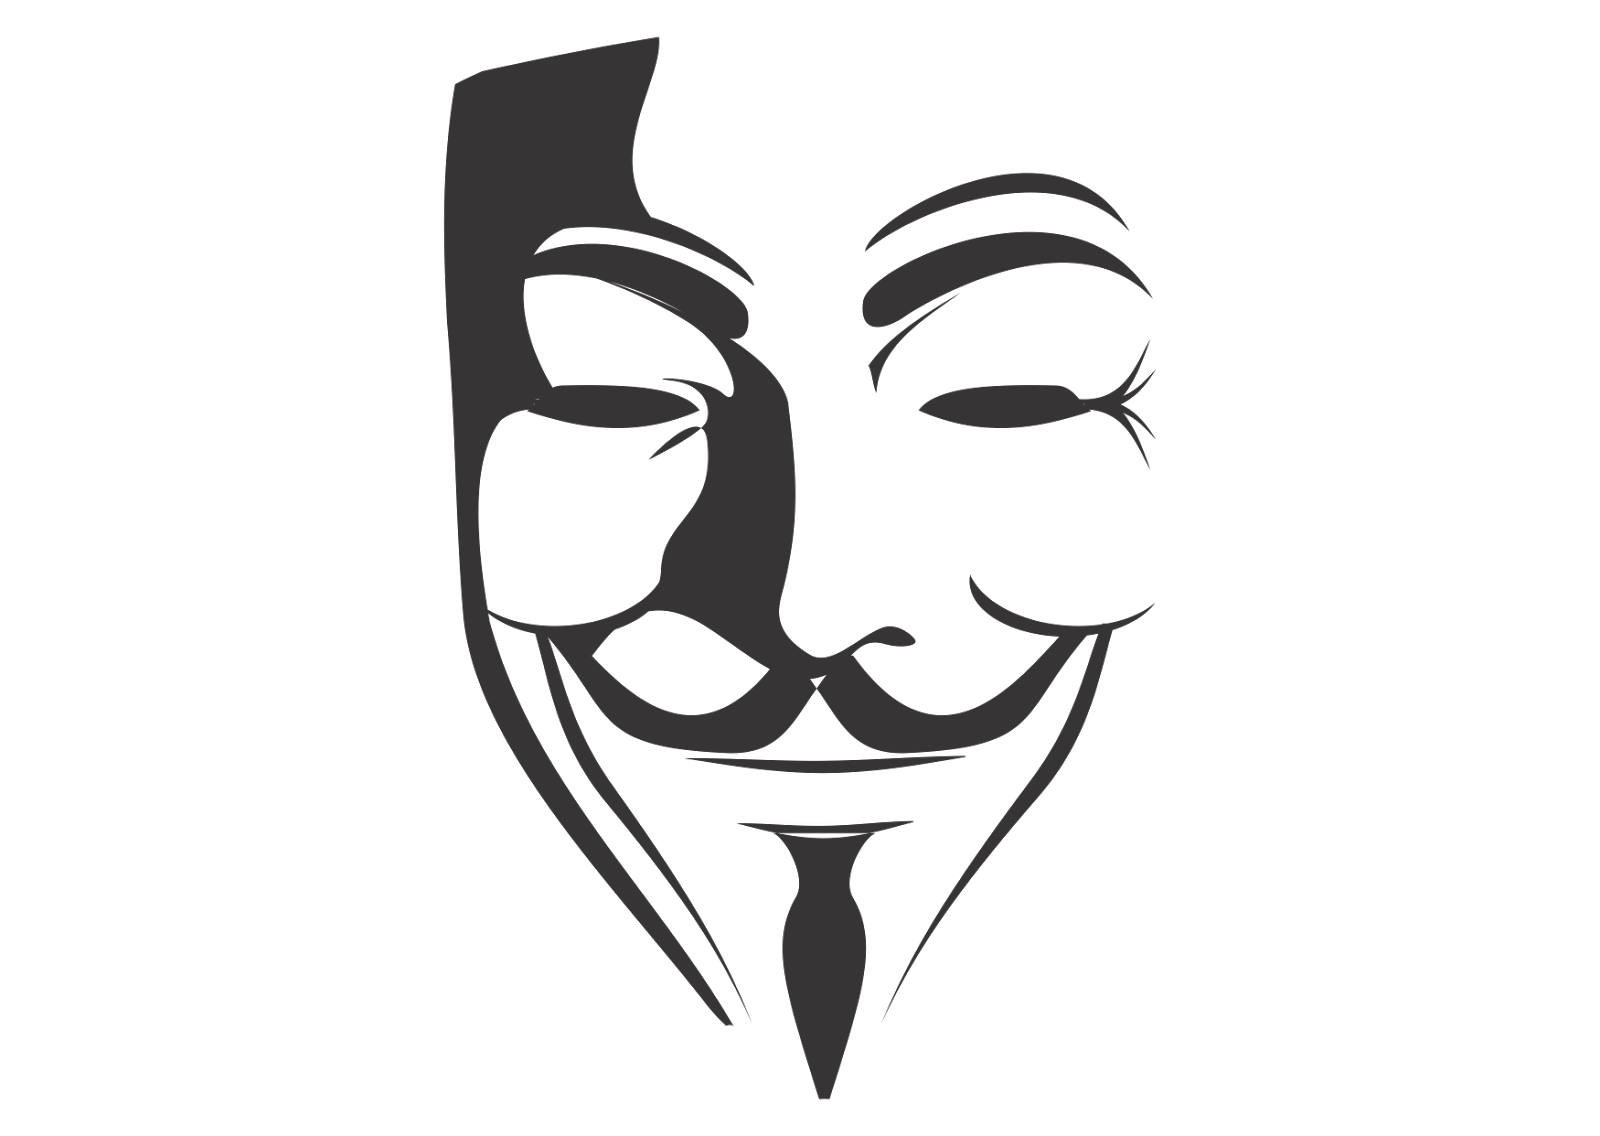 Anonymous Mask Wallpaper Transparent Png Clipart Free Download Ywd